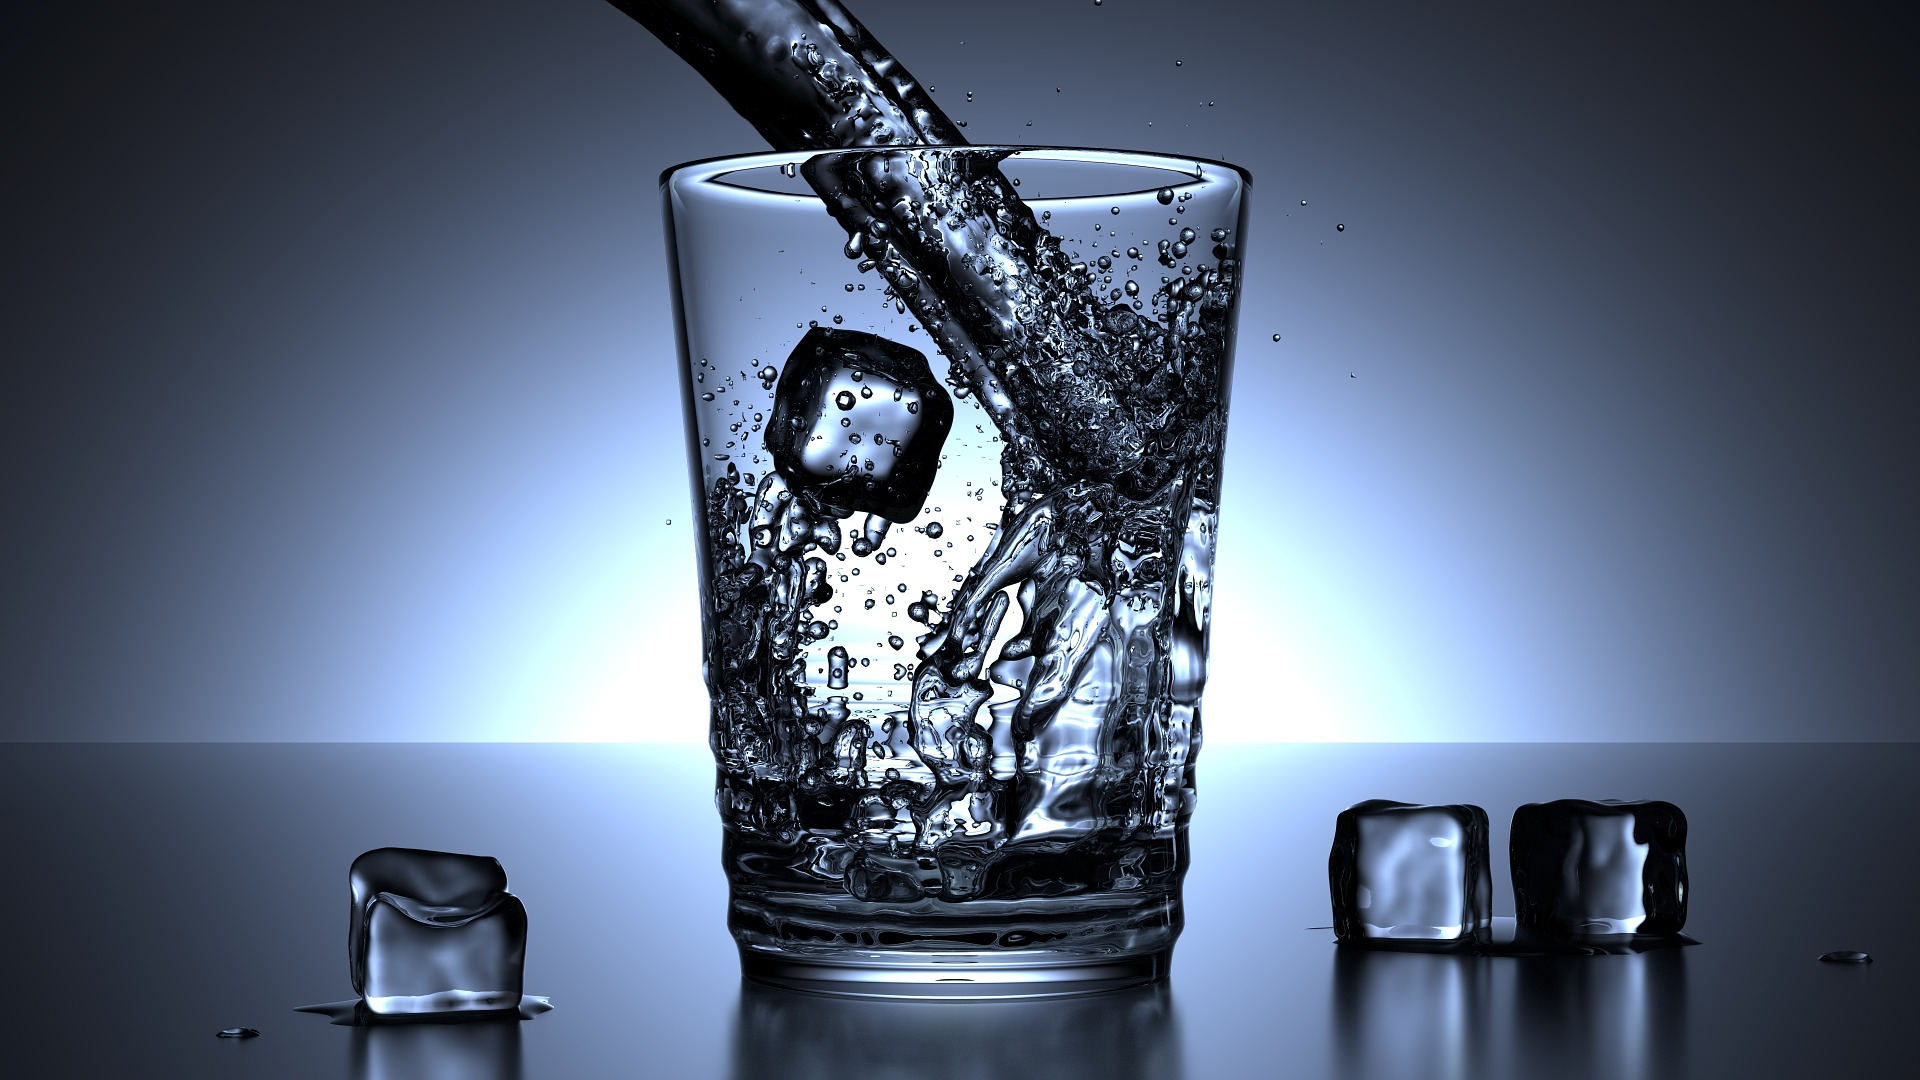 Cleaning Invisalign - a glass of water